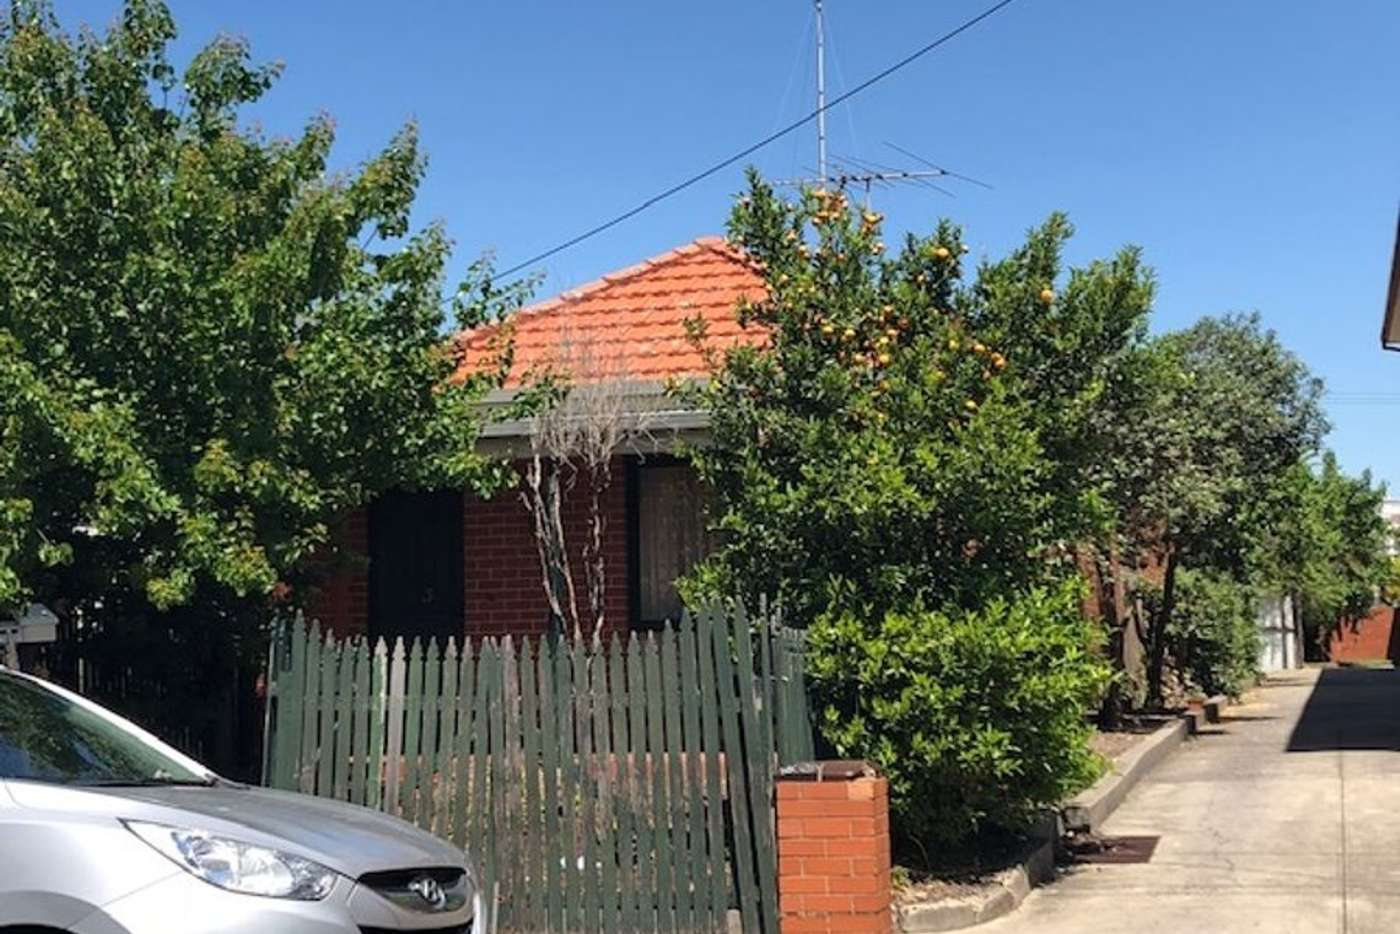 Main view of Homely house listing, 3 Jessie Street, Coburg VIC 3058